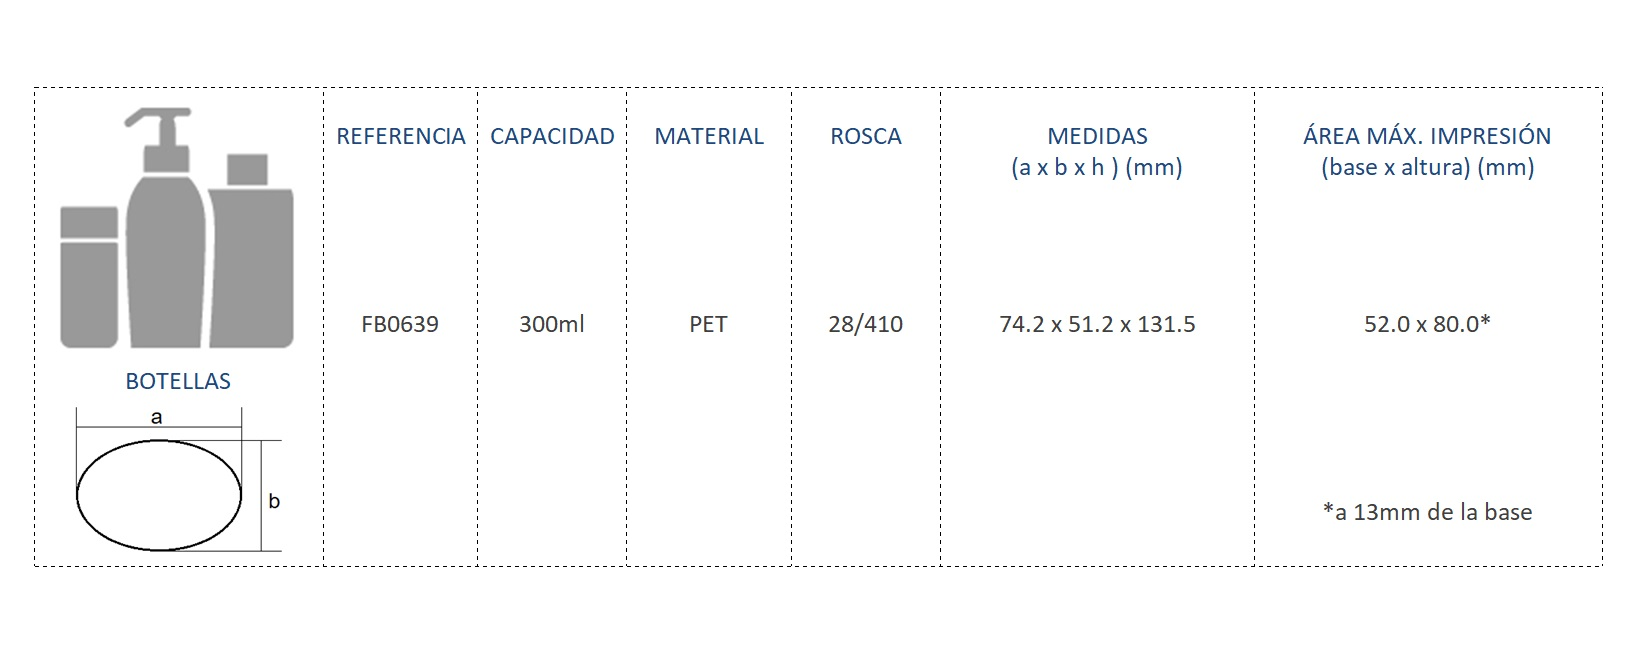 Cuadro de materiales botella FB0639